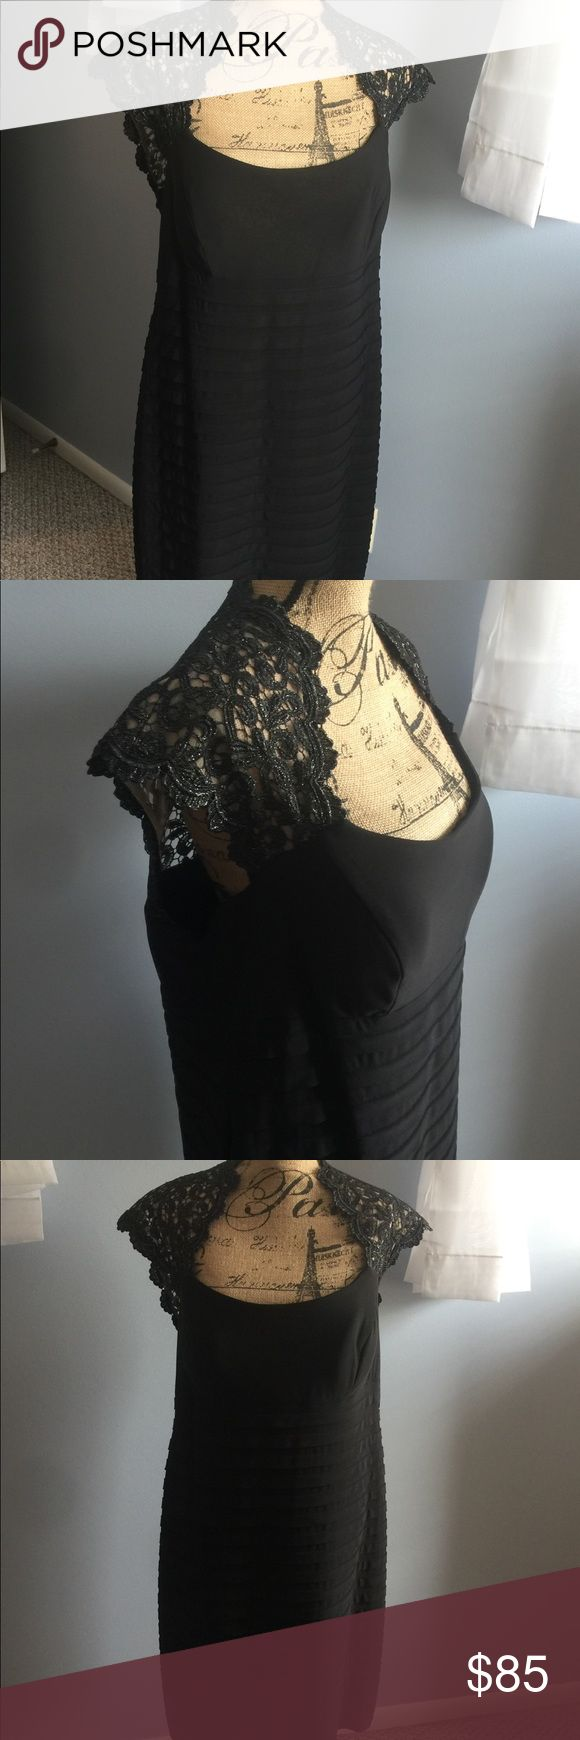 🎉🍾NYE🎉Xscape NEW w tags formal dress size 18w Xscape NEW with tags woman's formal dress,size 18w, black lace and silver caped sleeves and back, nude lined, skirt has horizontal pleats for a slimming effect, material is stretchable and comfortable, has hidden zipper, knee length. This dress is super gorgeous on and much prettier than the pictures show. New with tags and in perfect condition. Xscape Dresses Wedding